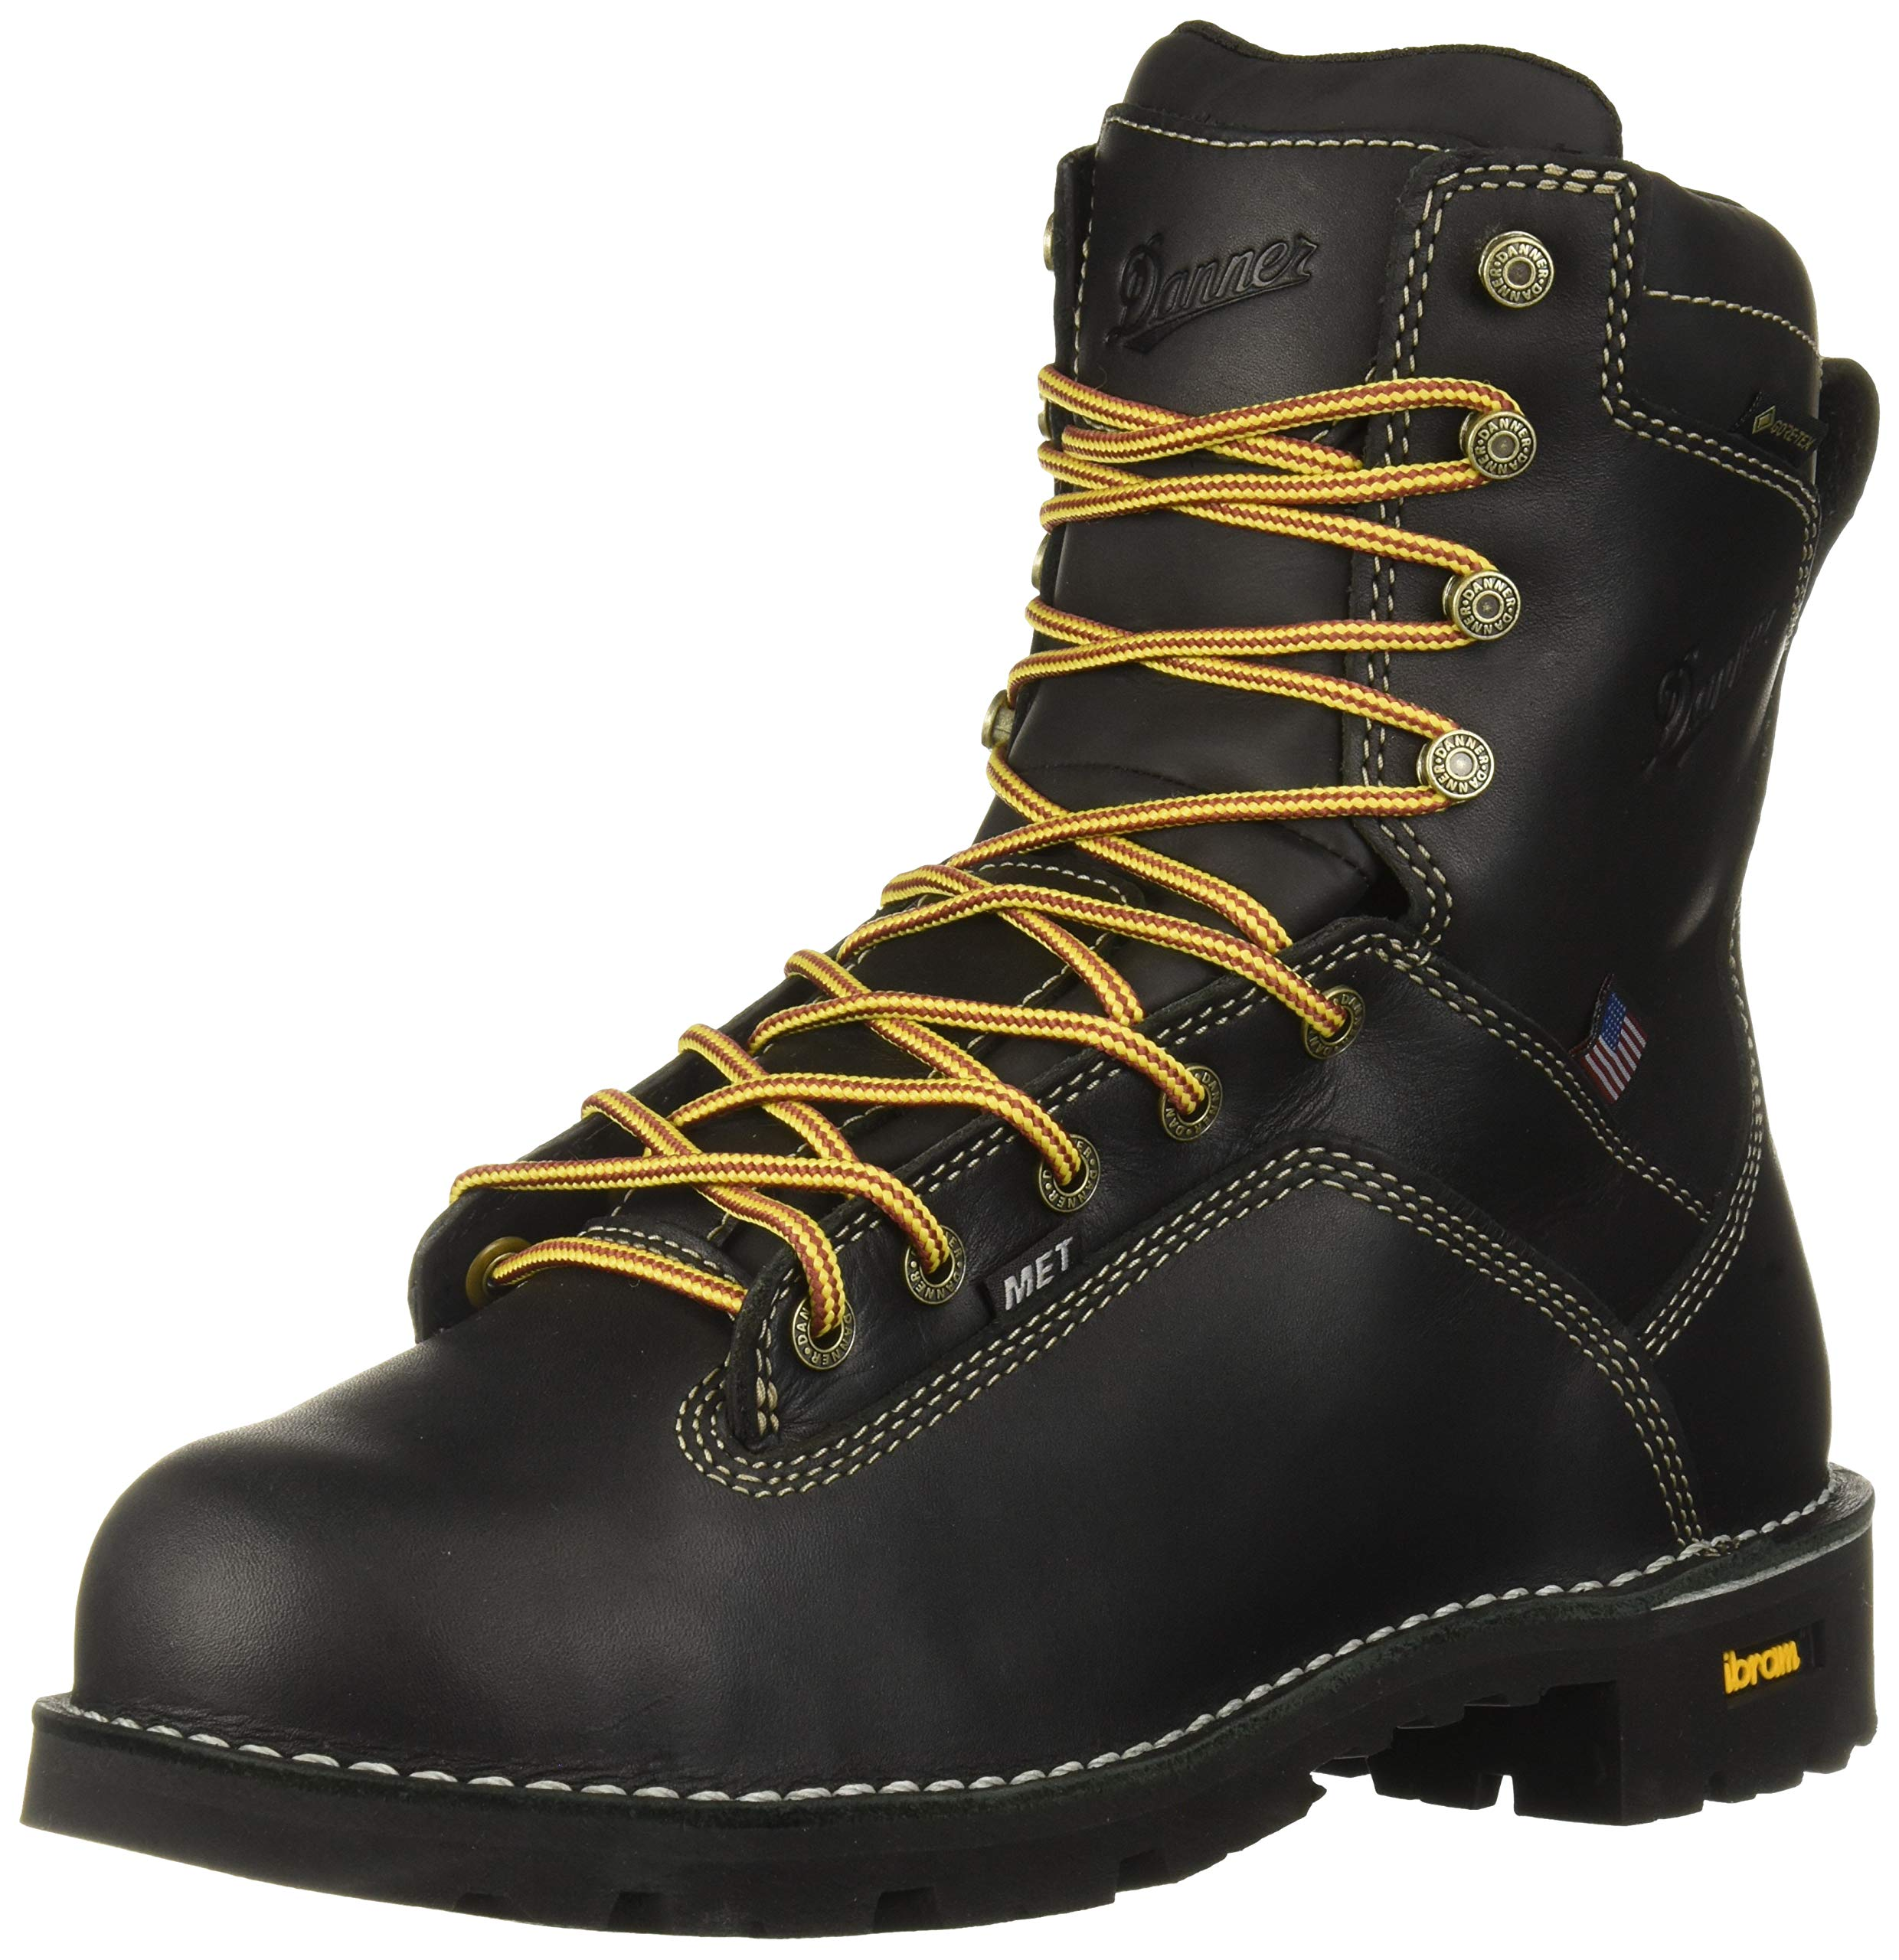 Danner Men's Quarry USA 8'' Construction Boot, Black, 13 2E US by Danner